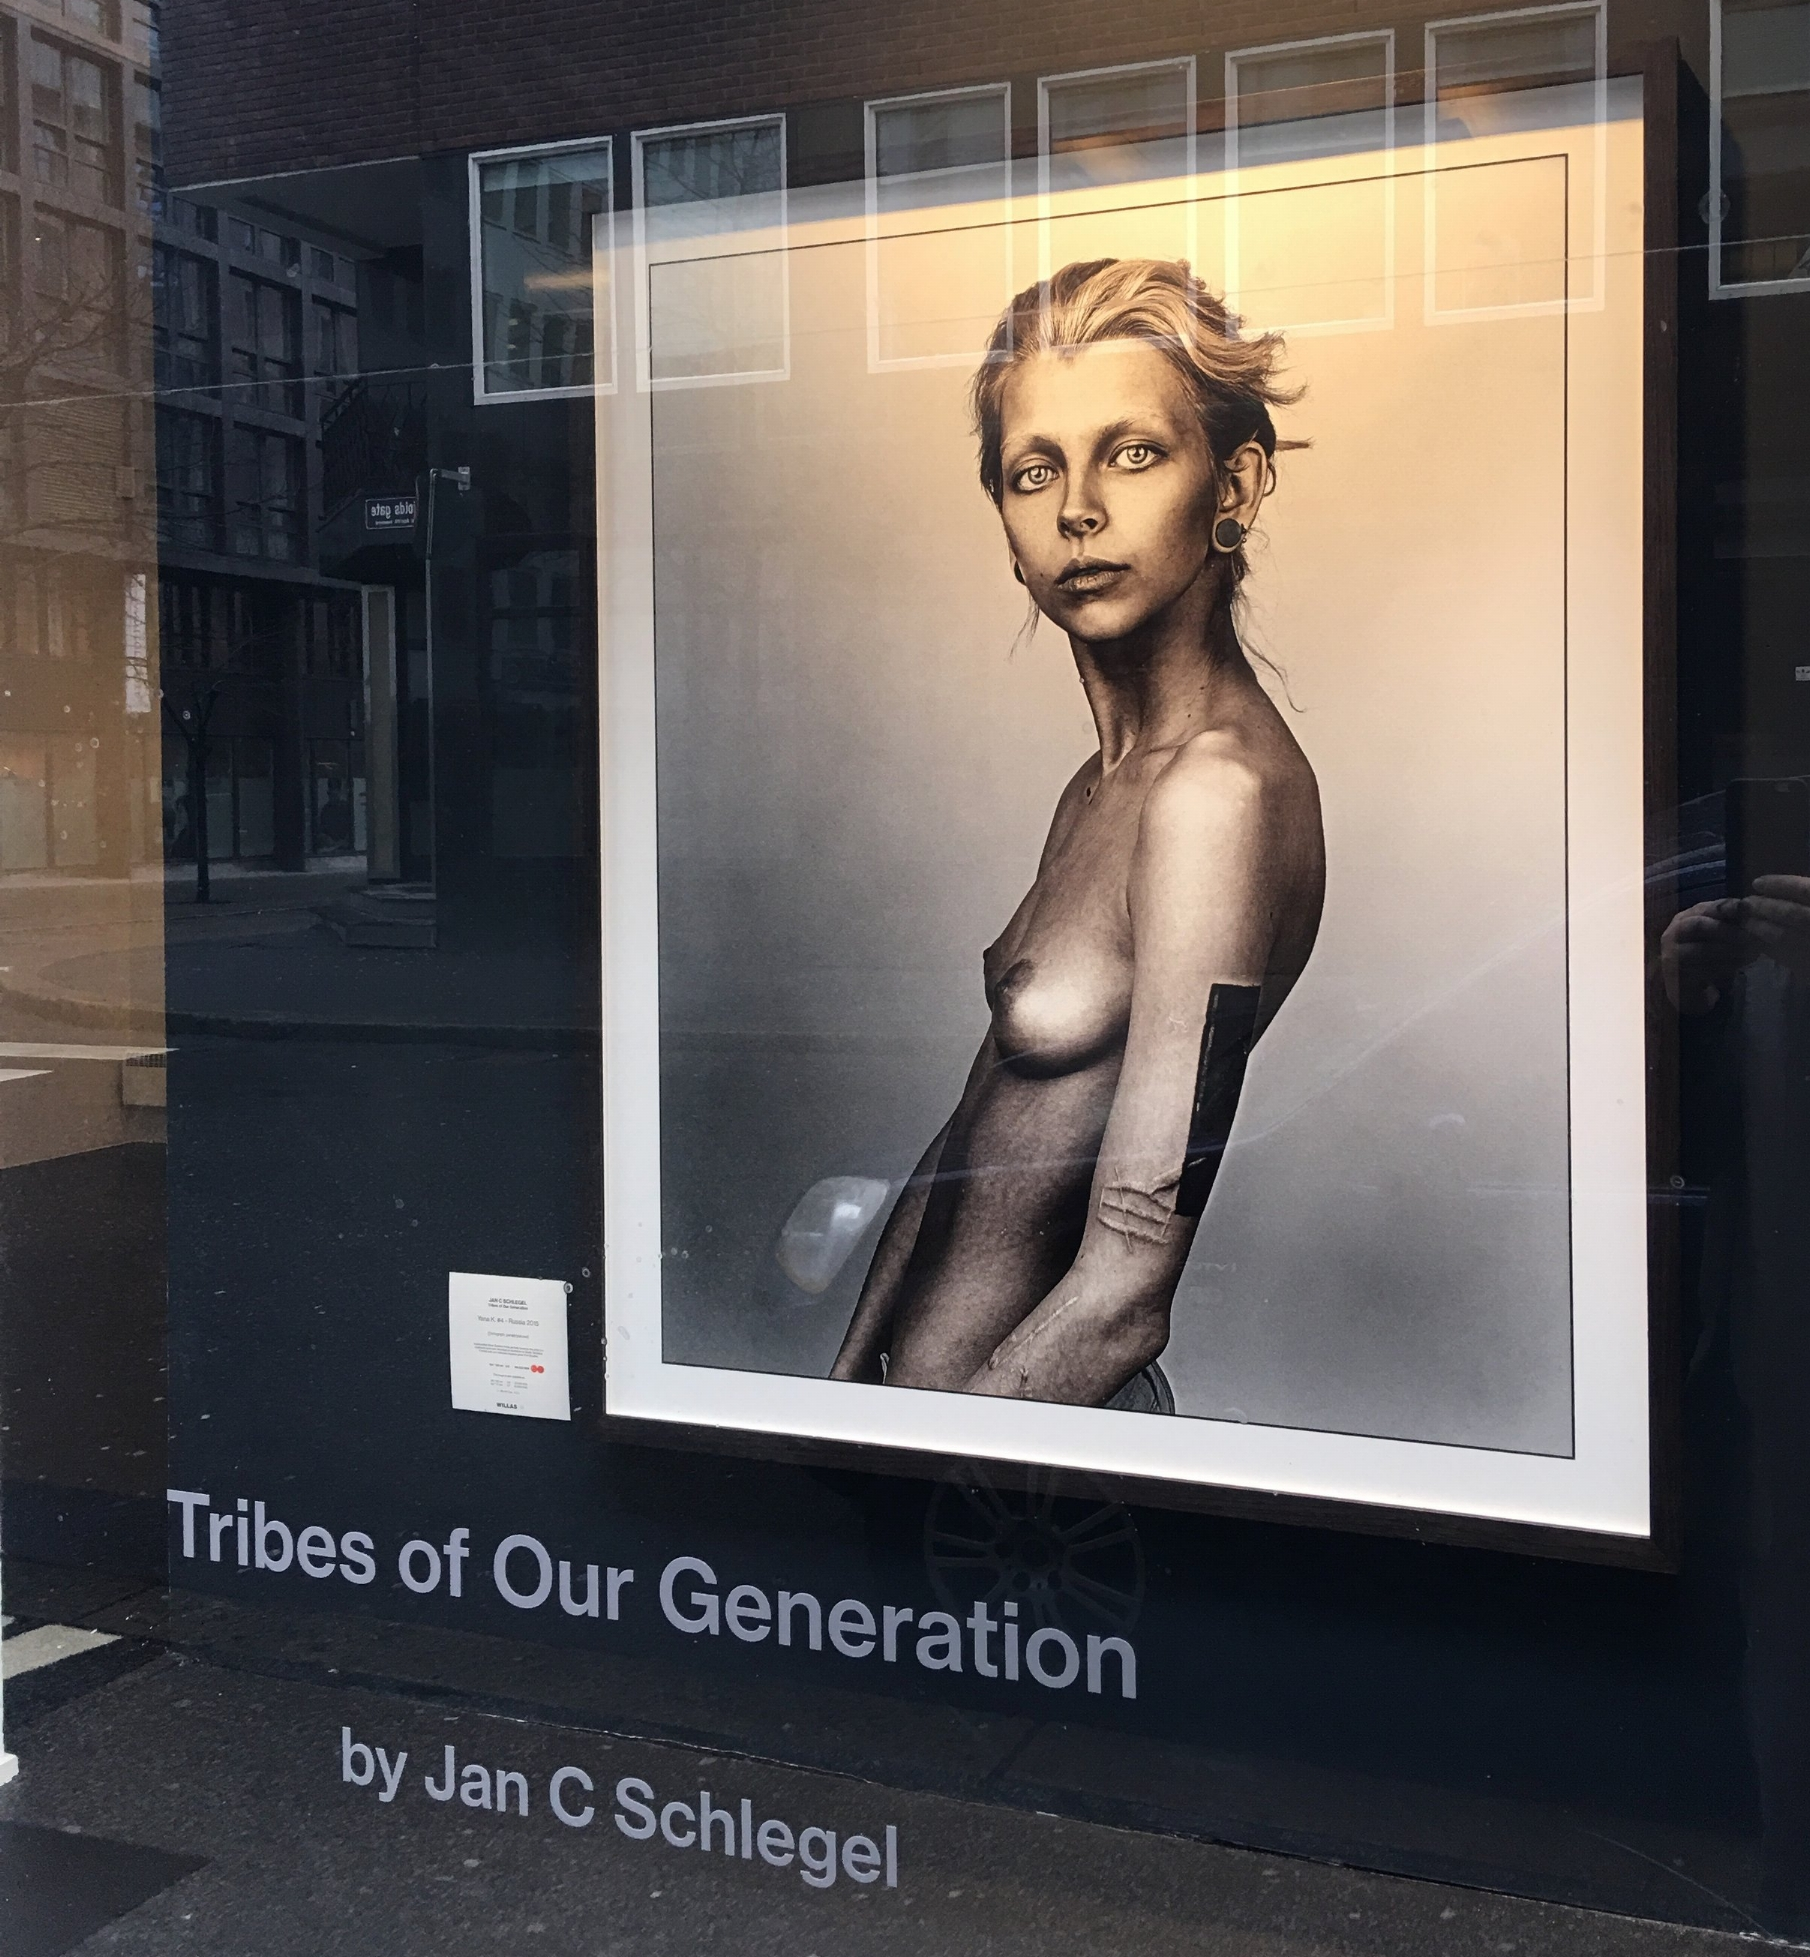 Picture of Yana K. at the exhibition at Willas in Oslo